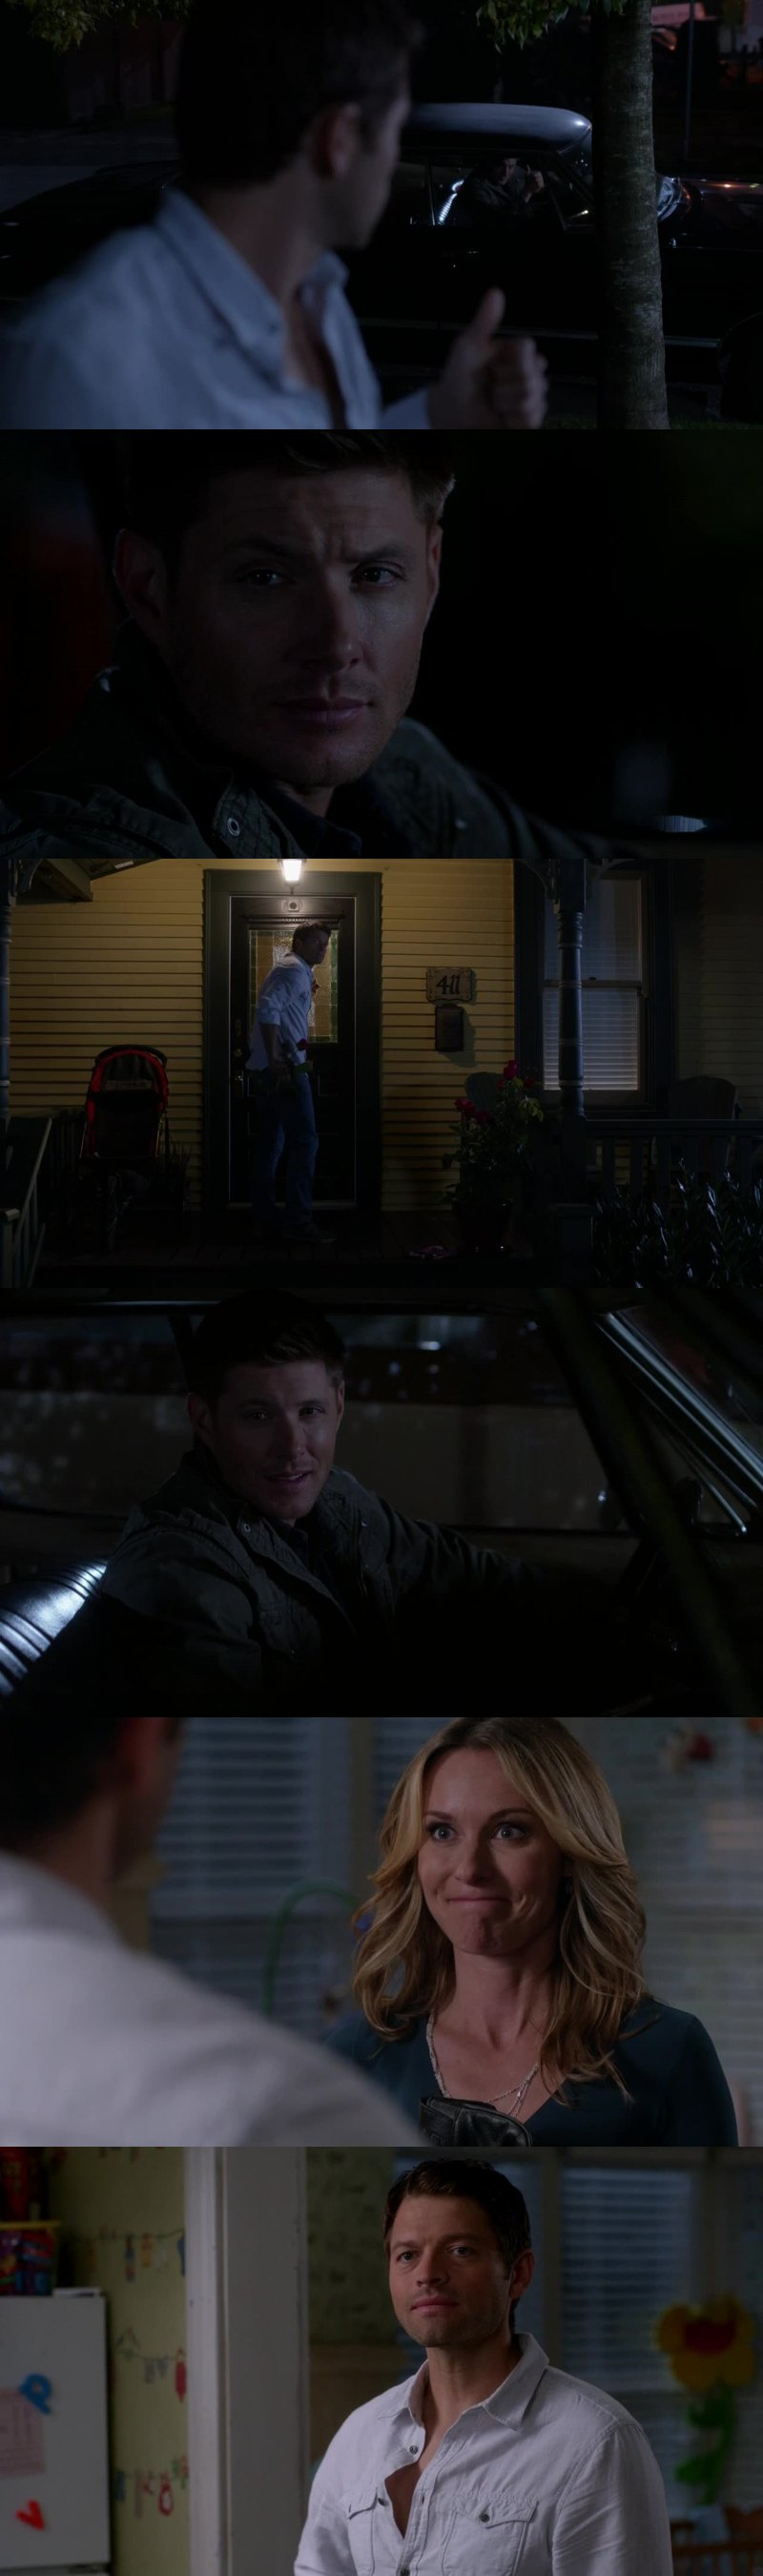 Dean and Cas make such a great team! Dean is so cute to advice Cas about his date!!! About that date: listen to me blondie how could you put Cas in the friendzone???   YOU KNOW NOTHING!! Worst than Jon Snow